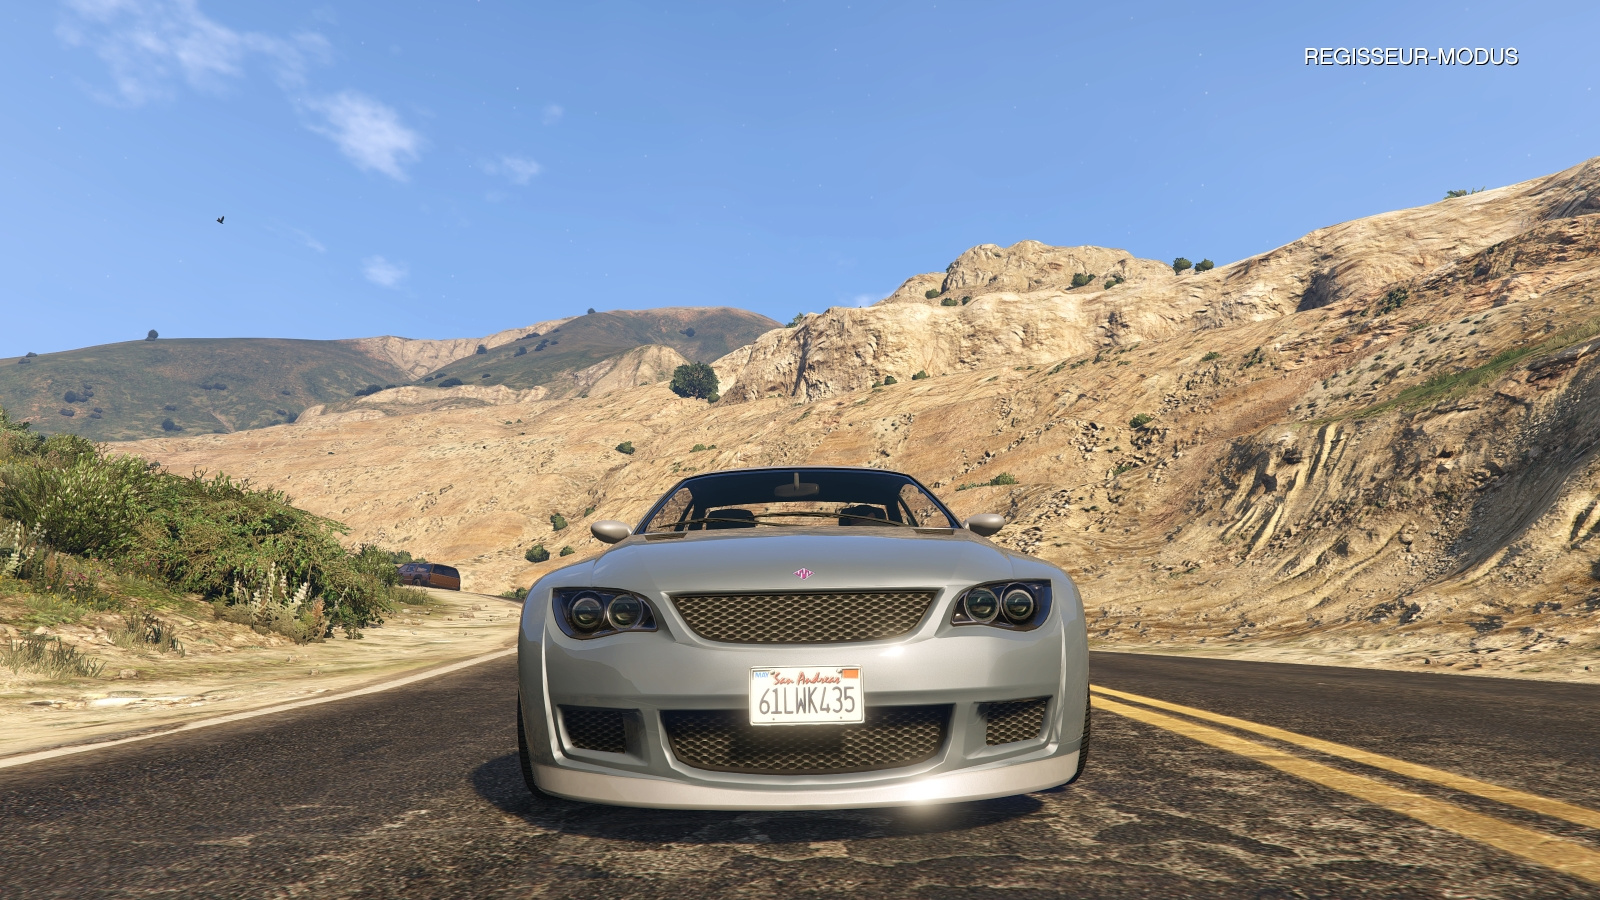 Clear HD ENB - Graphics Mod - GTA5-Mods com